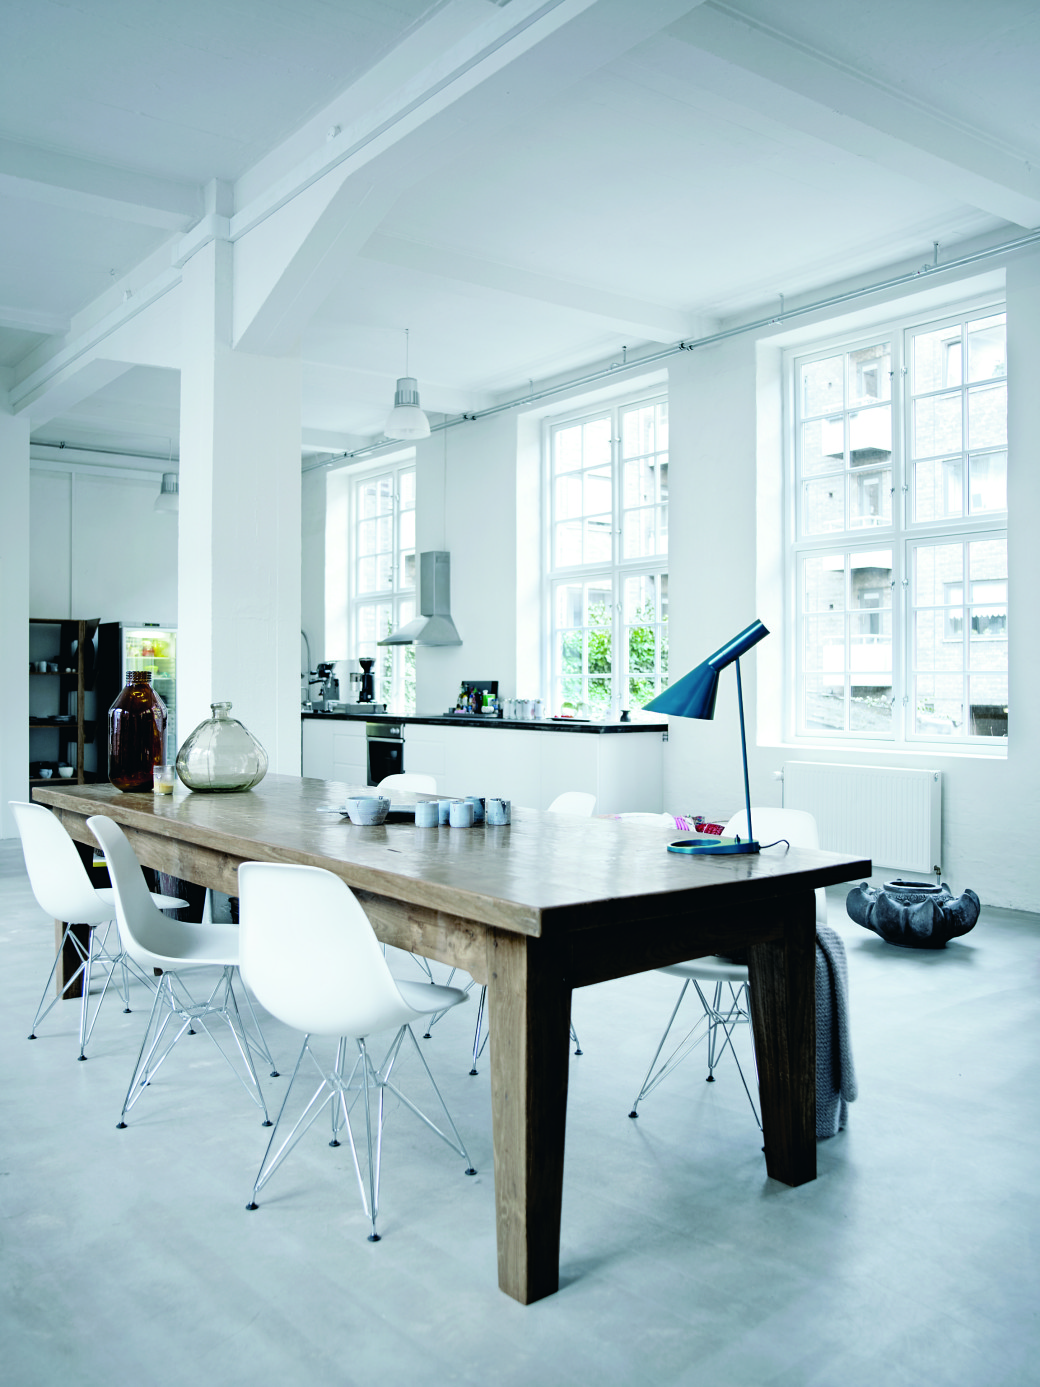 Clean whites and monochromes form the basis of the uncluttered Scandinavian style